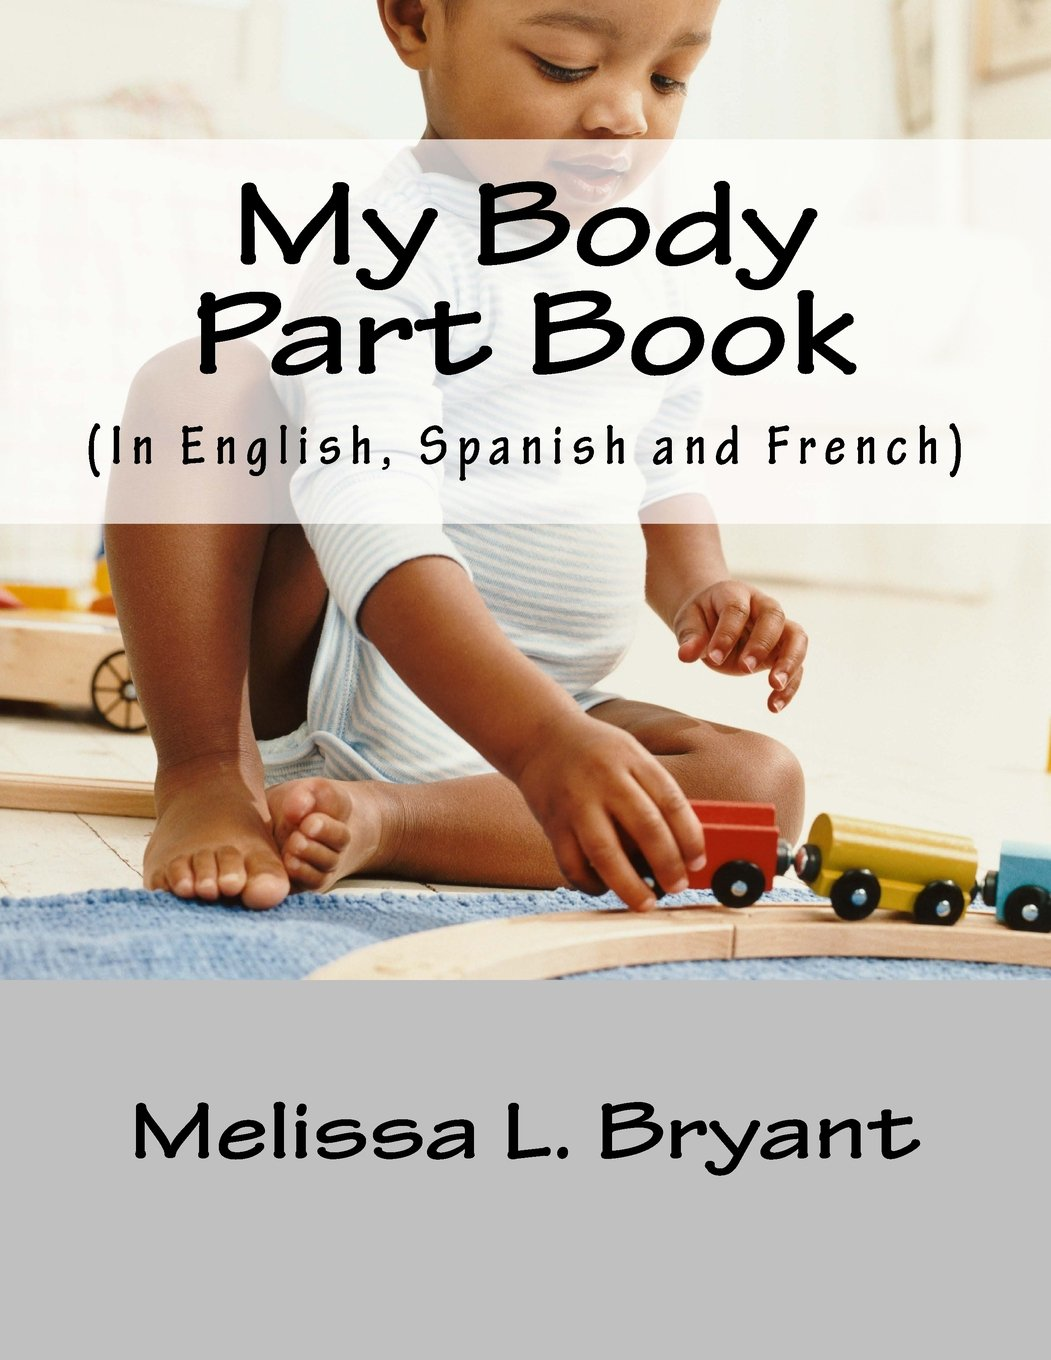 My body part book.: In English,Spanish,and French. (English, Spanish and French Edition) ebook